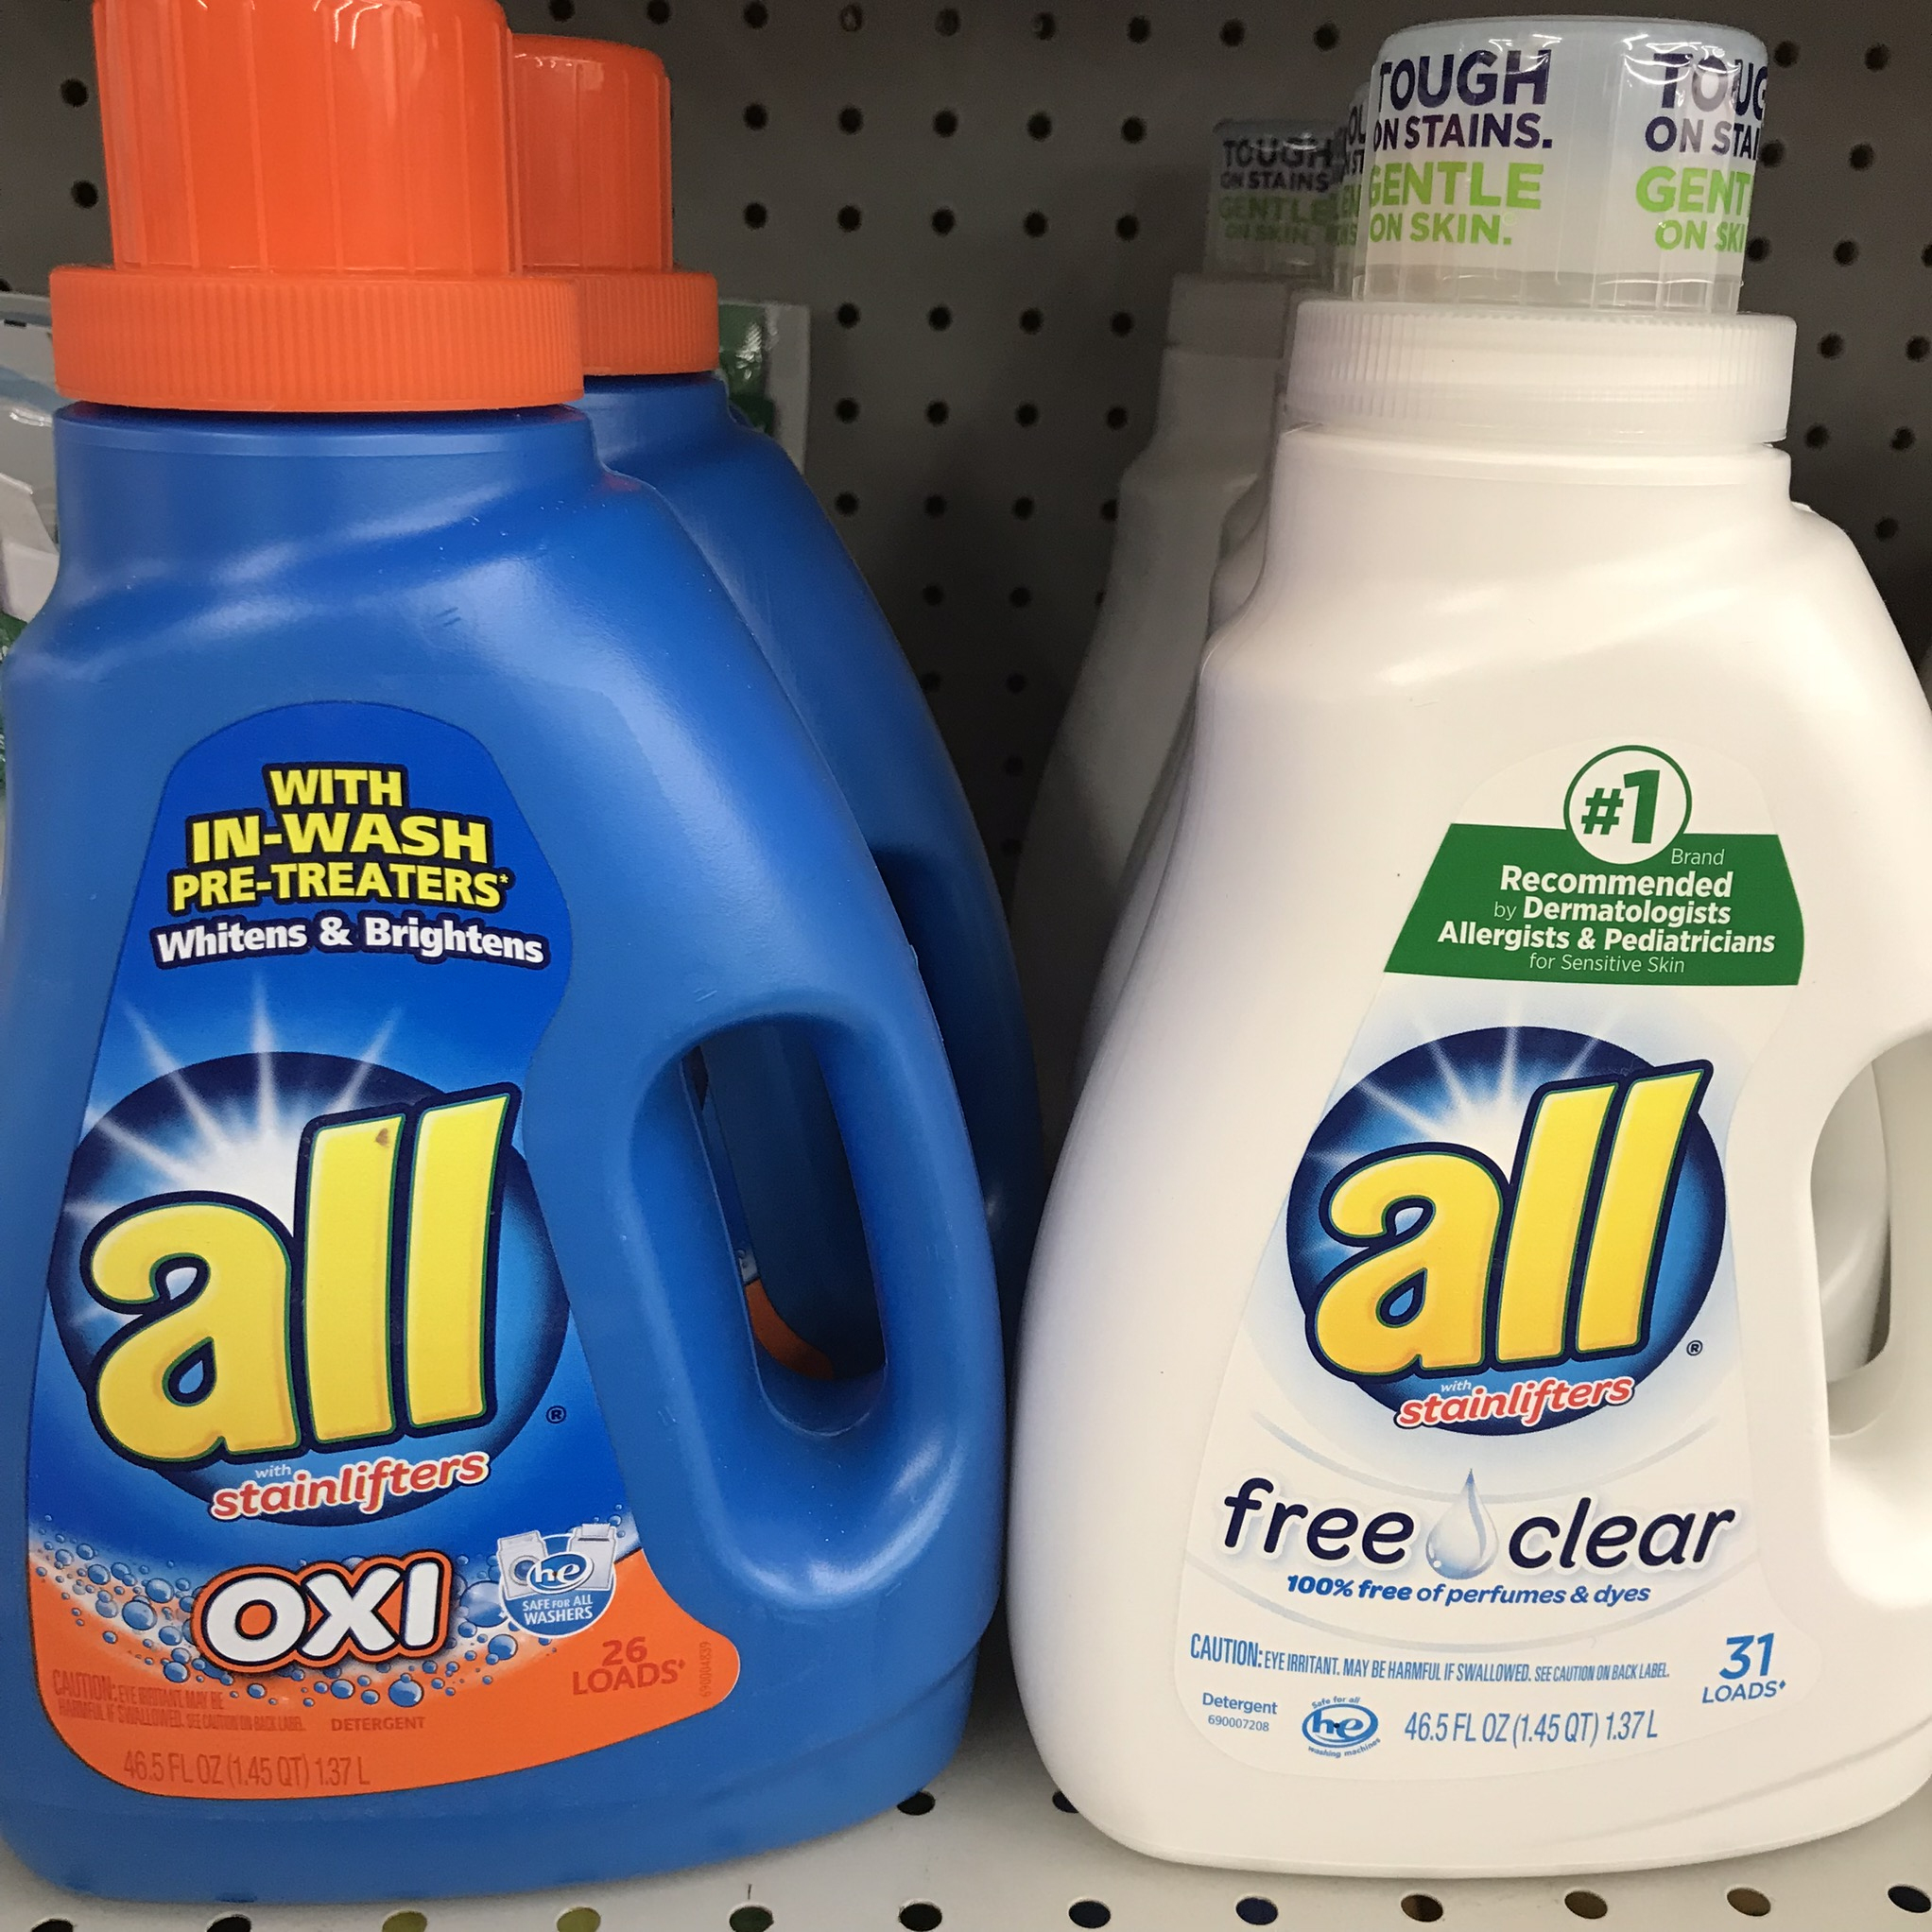 Detergent Coupons | Save On Persil & All Detergent :: Southern Savers - Free All Detergent Printable Coupons